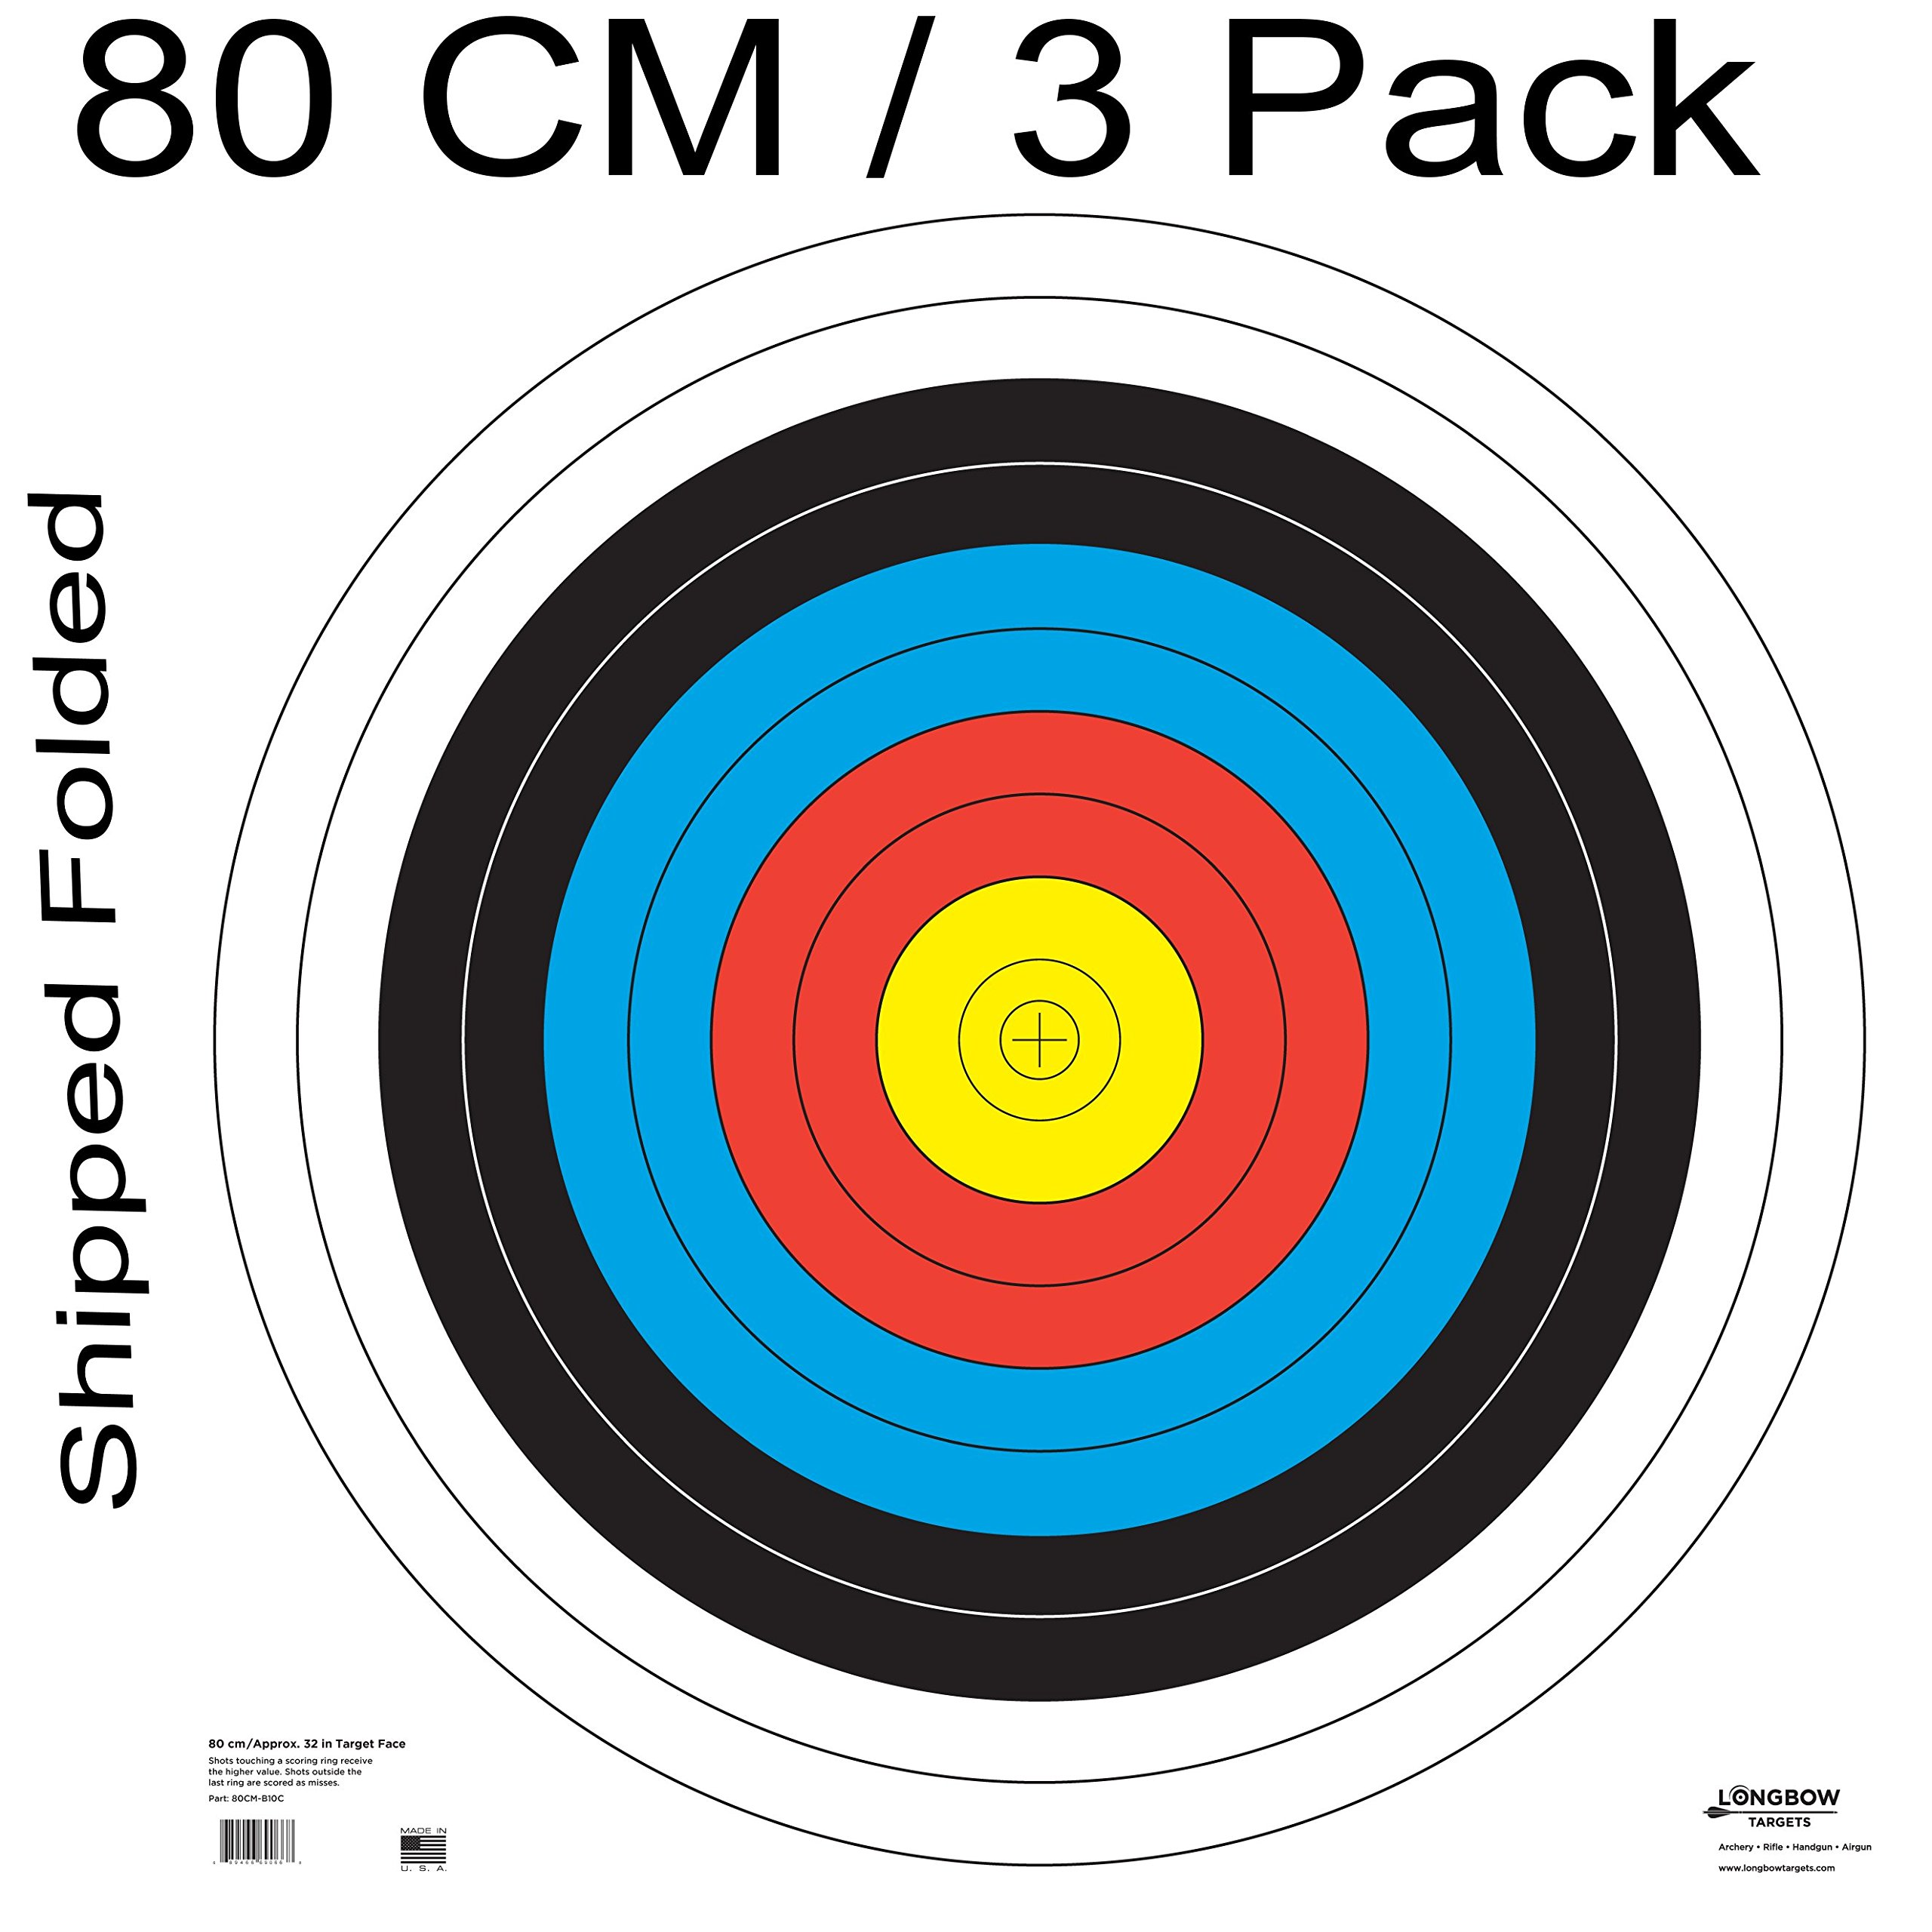 Archery 40cm & 80cm Targets by Longbow (3 Pack (80cm) Folded, 80cm Archery Paper) by Longbow Targets